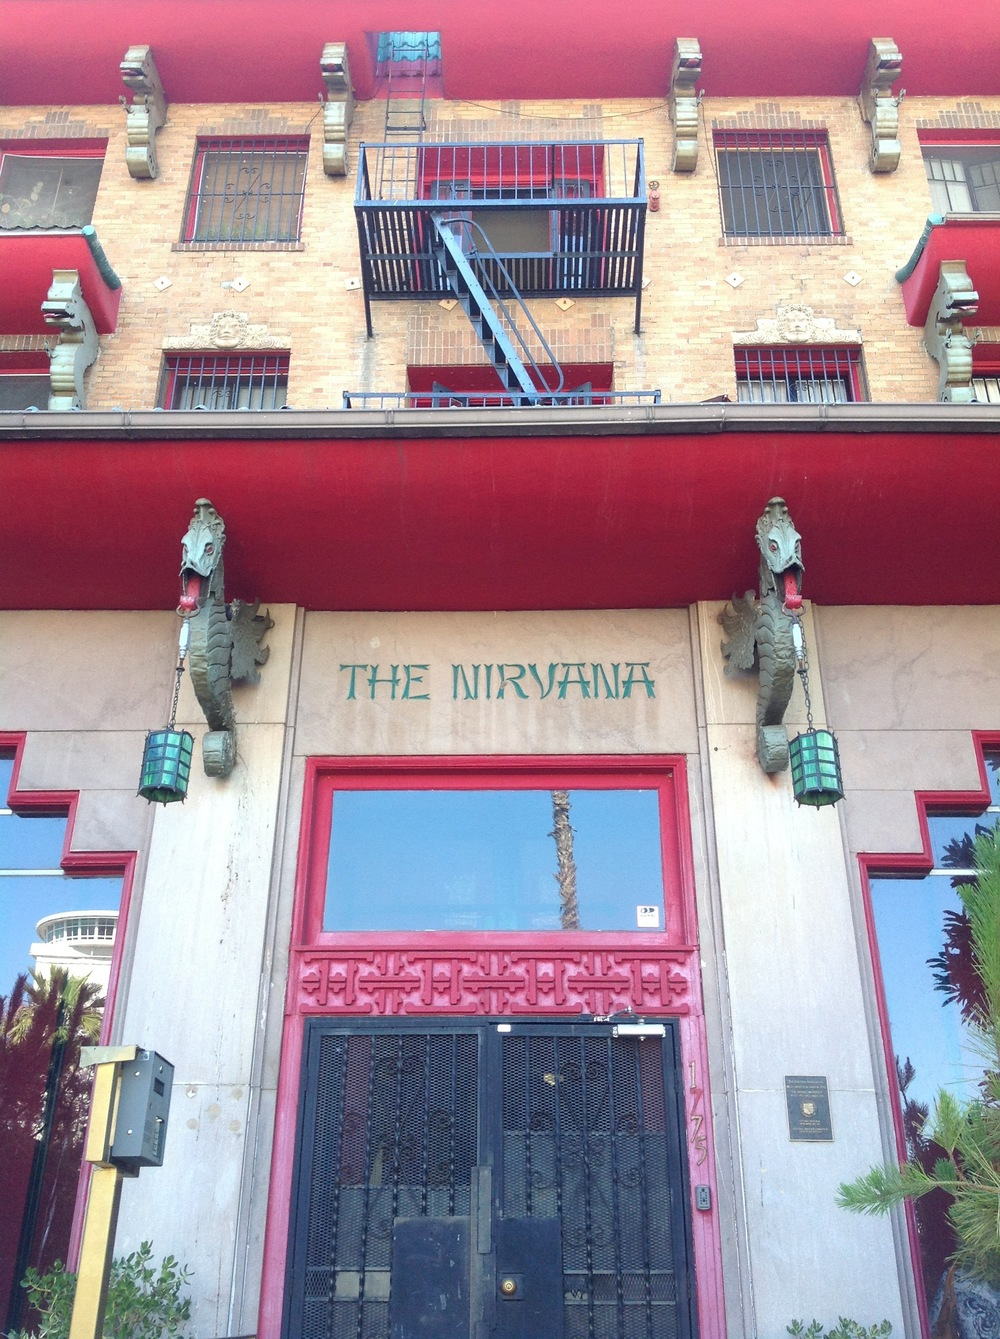 The Nirvana Apartments where some Magic Castle performers stay